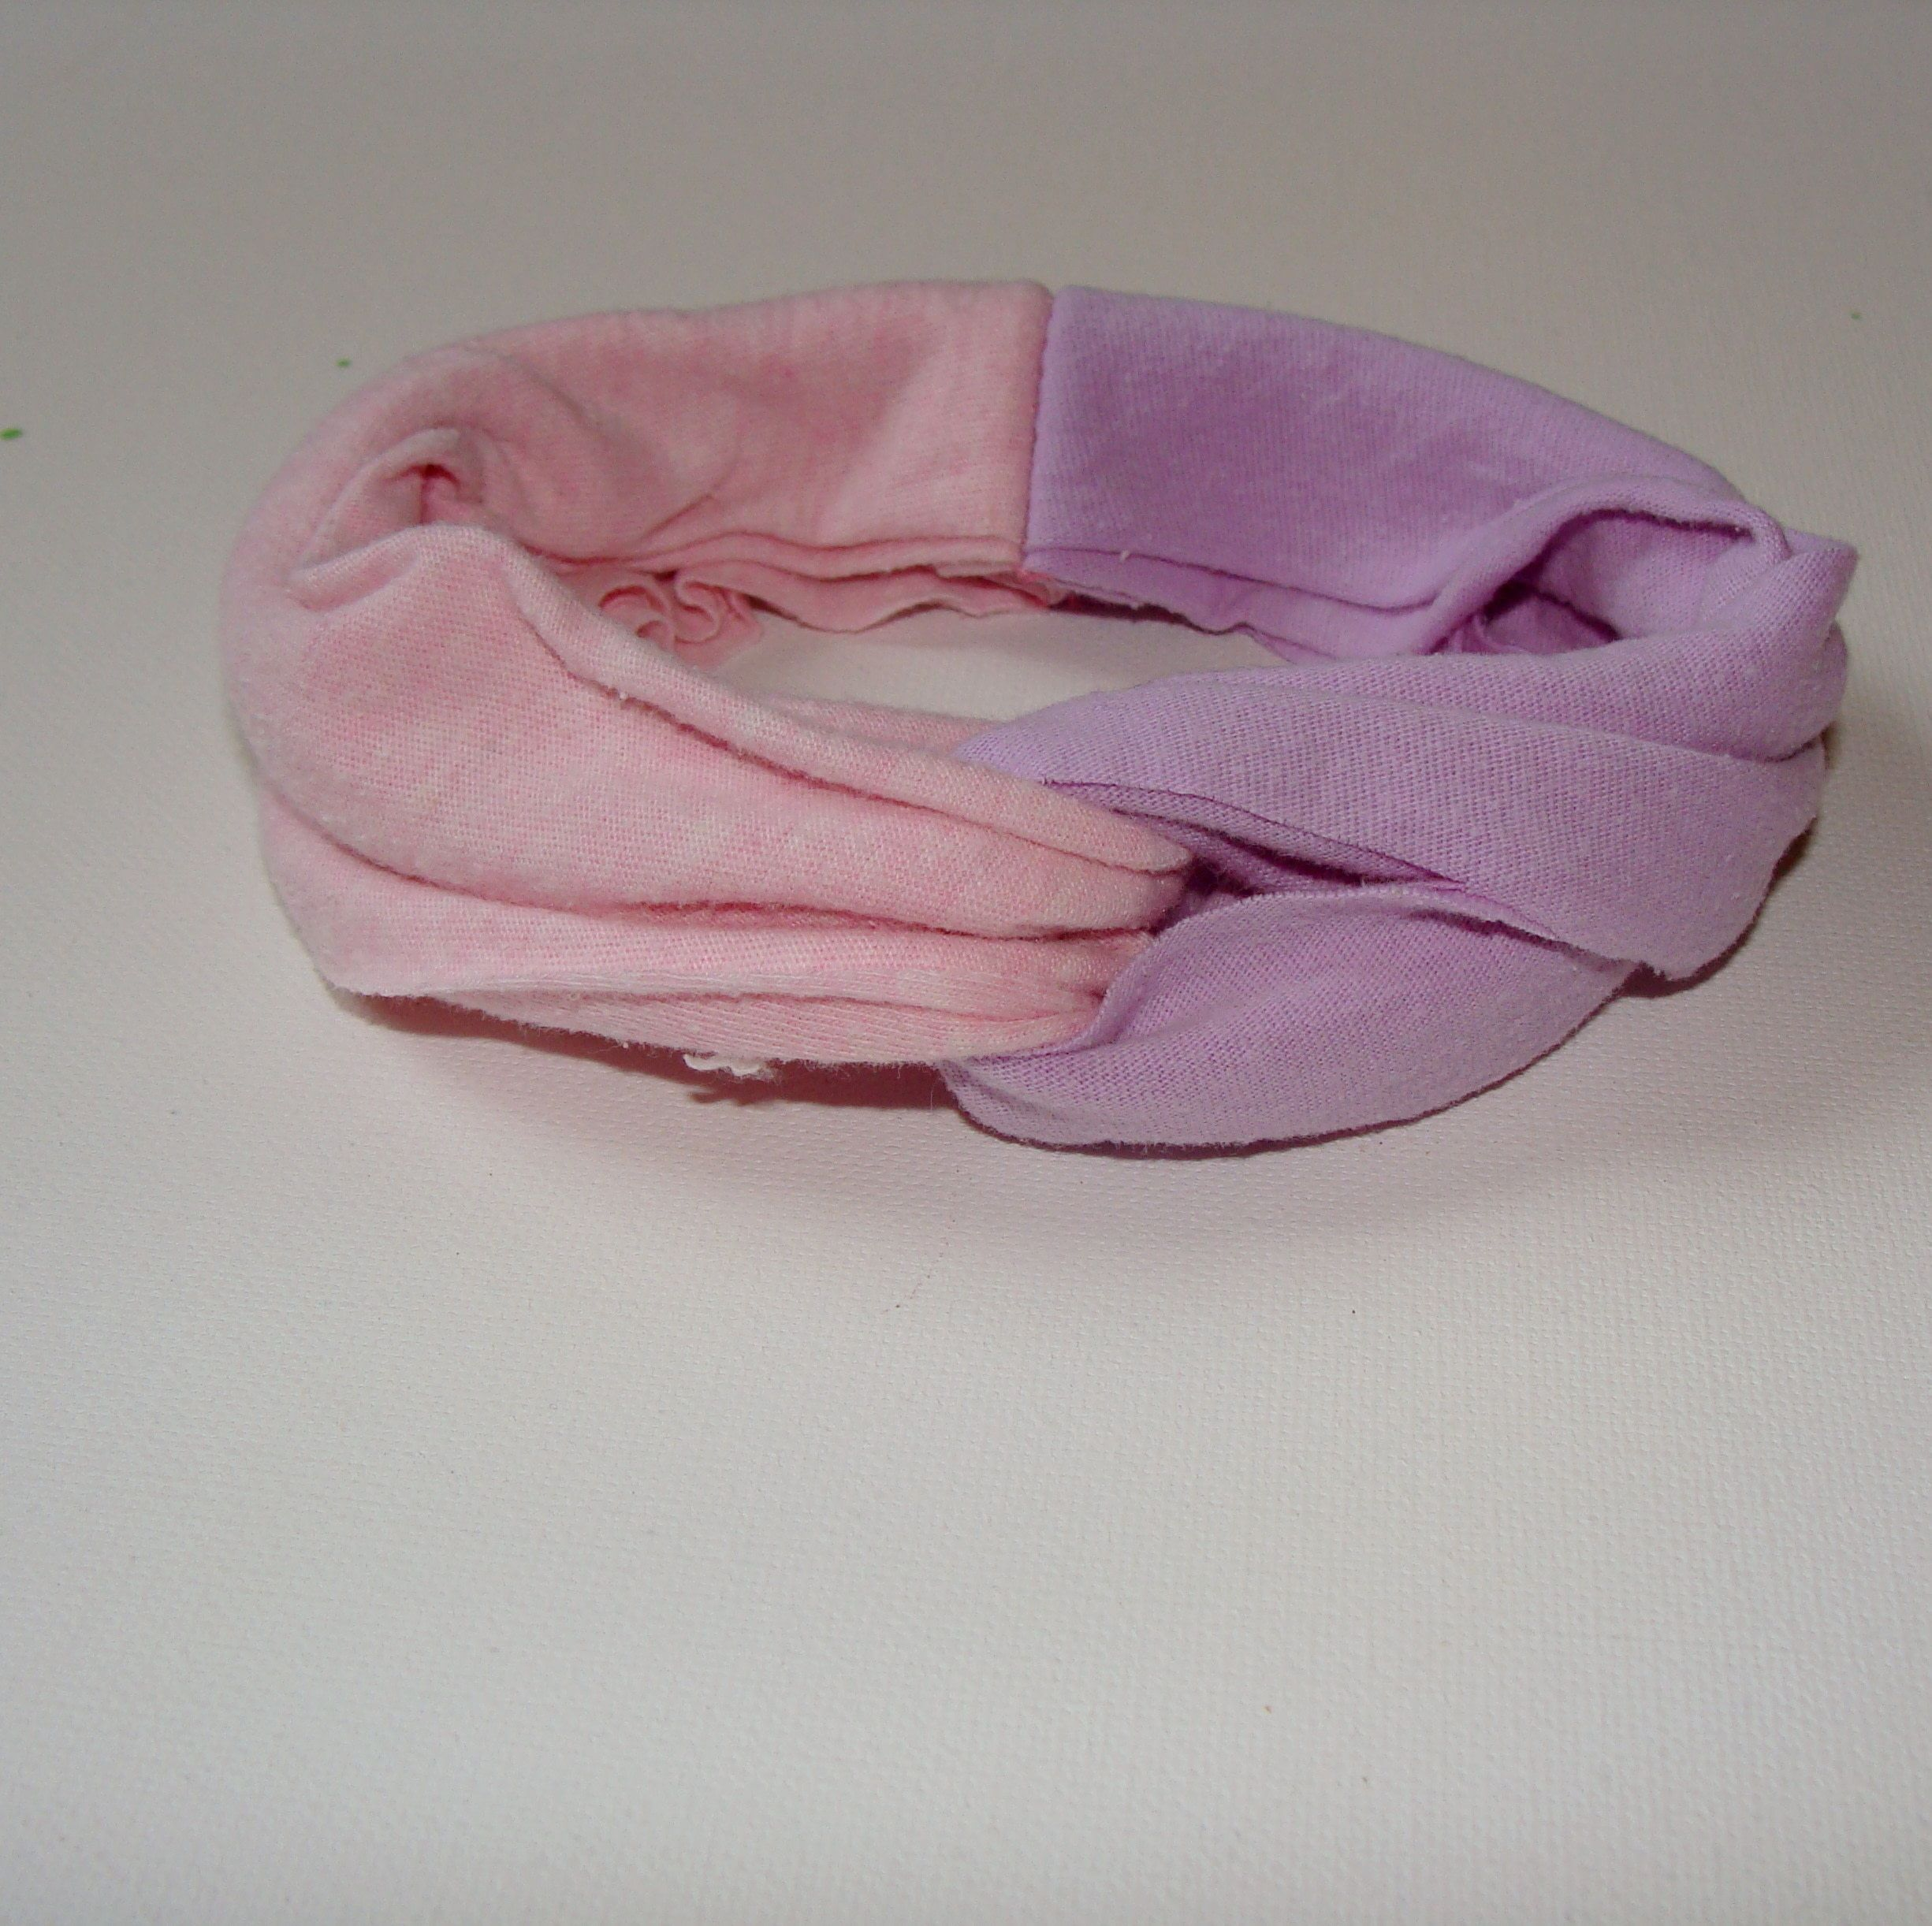 Infant turban headband crafts pinterest turban headbands and infant headband tutorial this sewing tutorial for an infant turban headband is a great starter project click through for instructionstips baditri Images